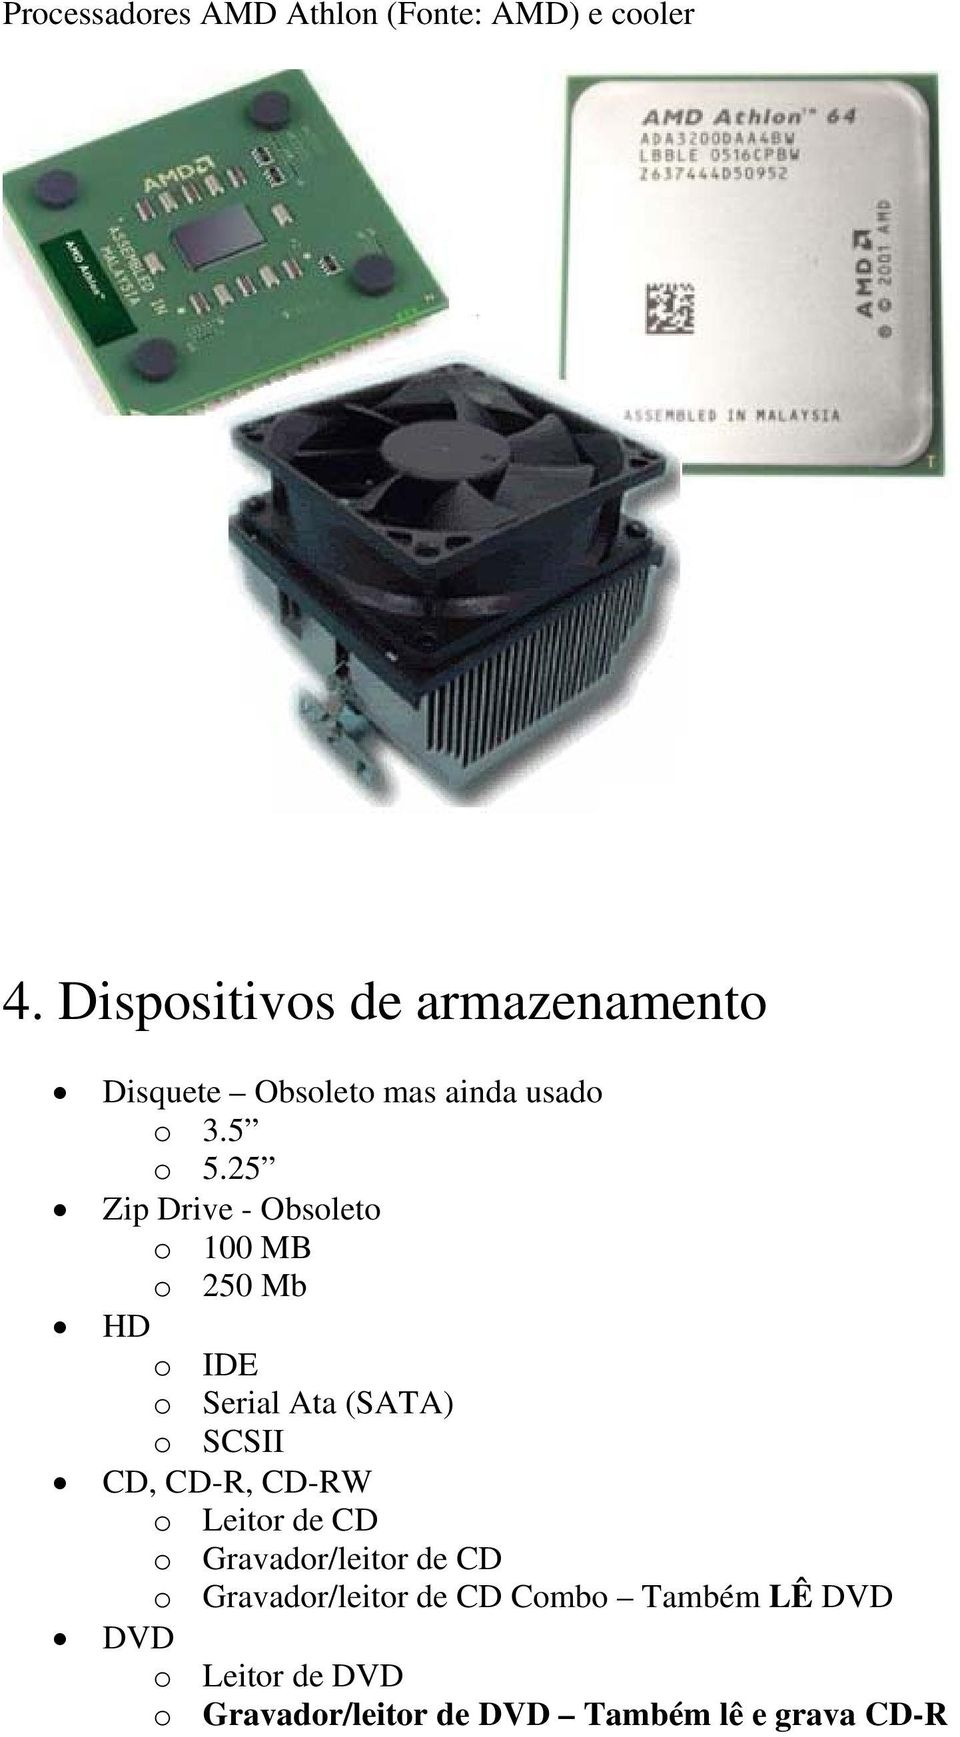 25 Zip Drive - Obsoleto o 100 MB o 250 Mb HD o IDE o Serial Ata (SATA) o SCSII CD, CD-R,